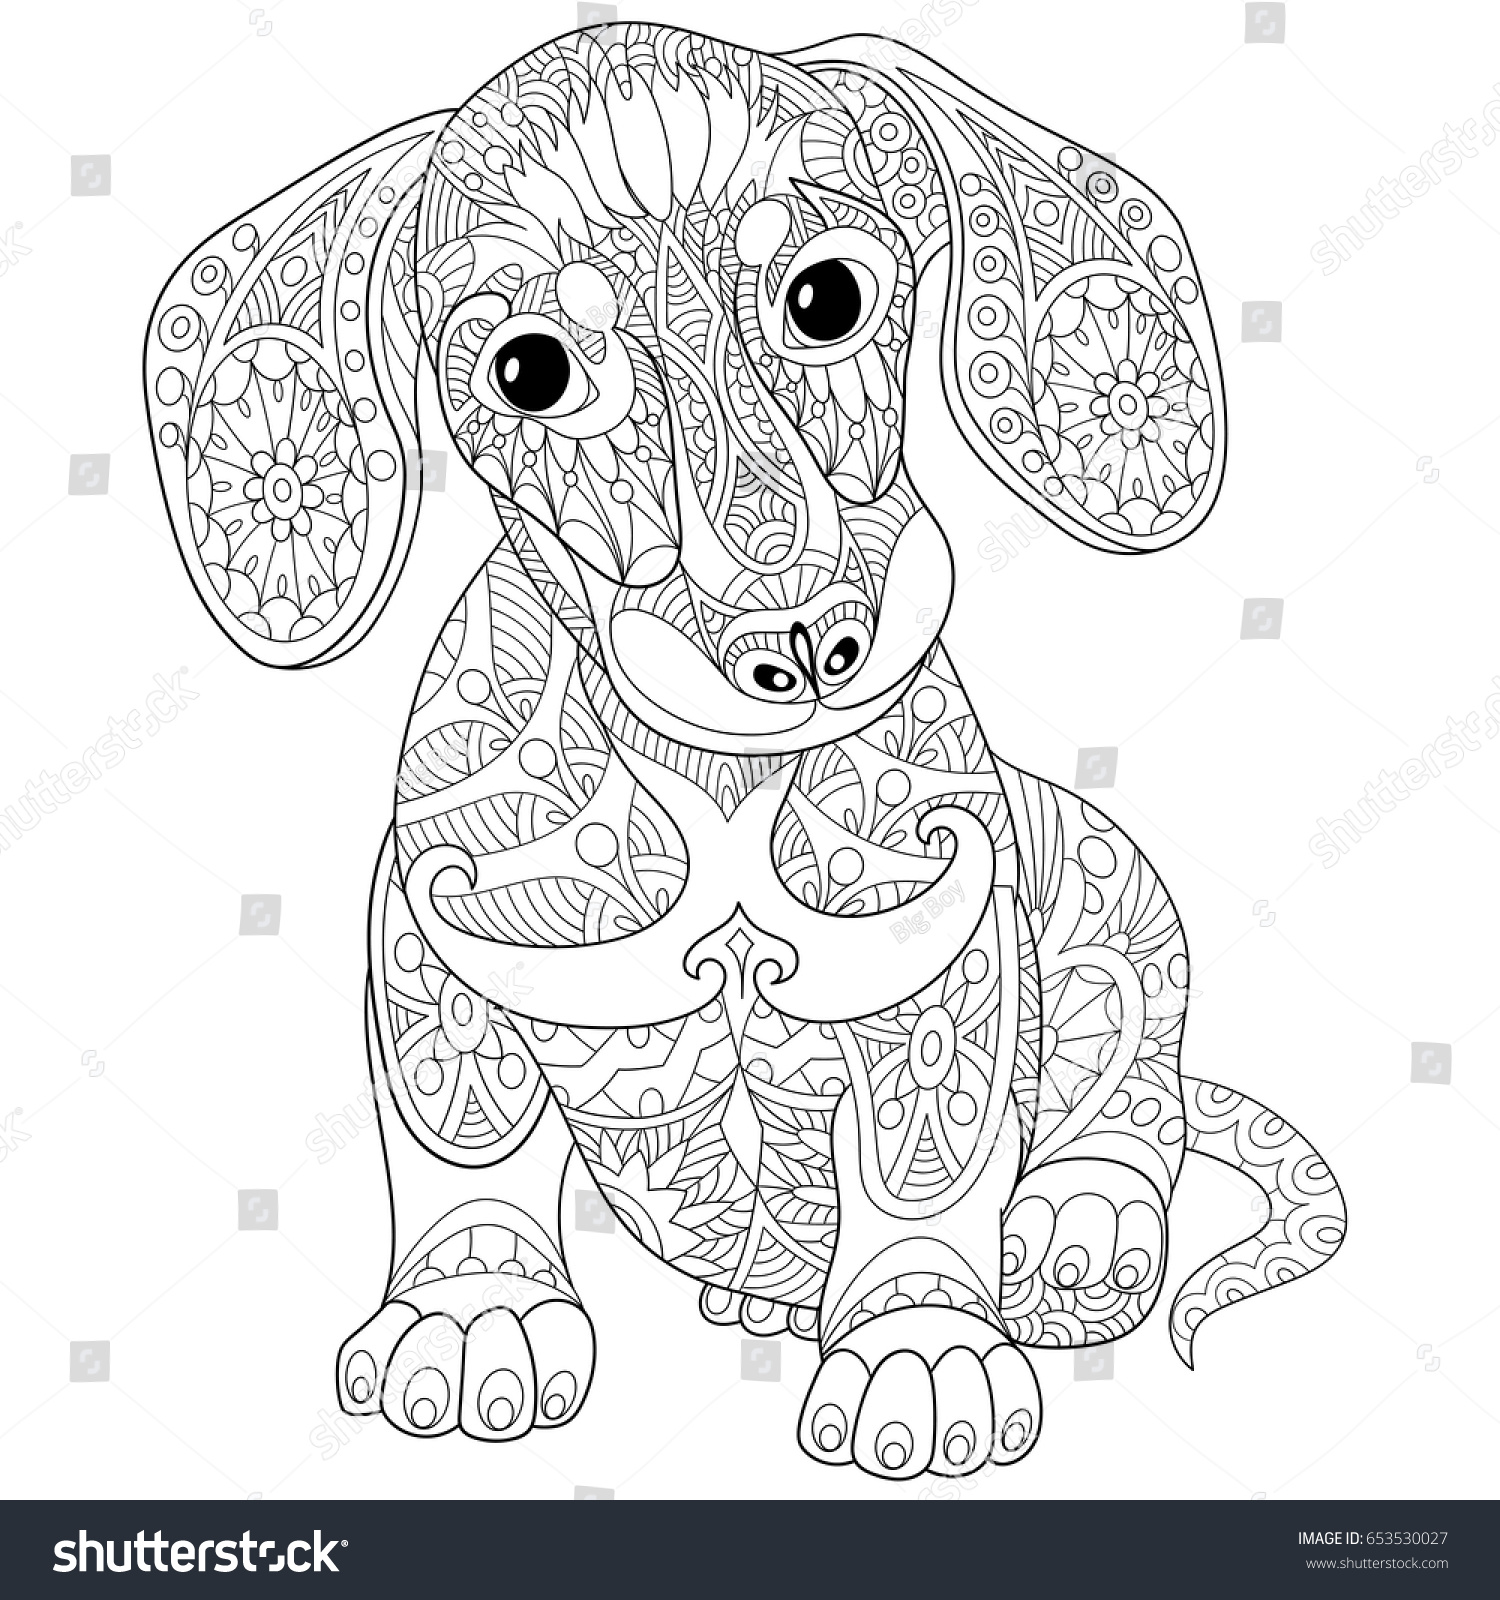 Coloring Page Dachshund Puppy Dog Symbol Stock Vector (Royalty Free ...